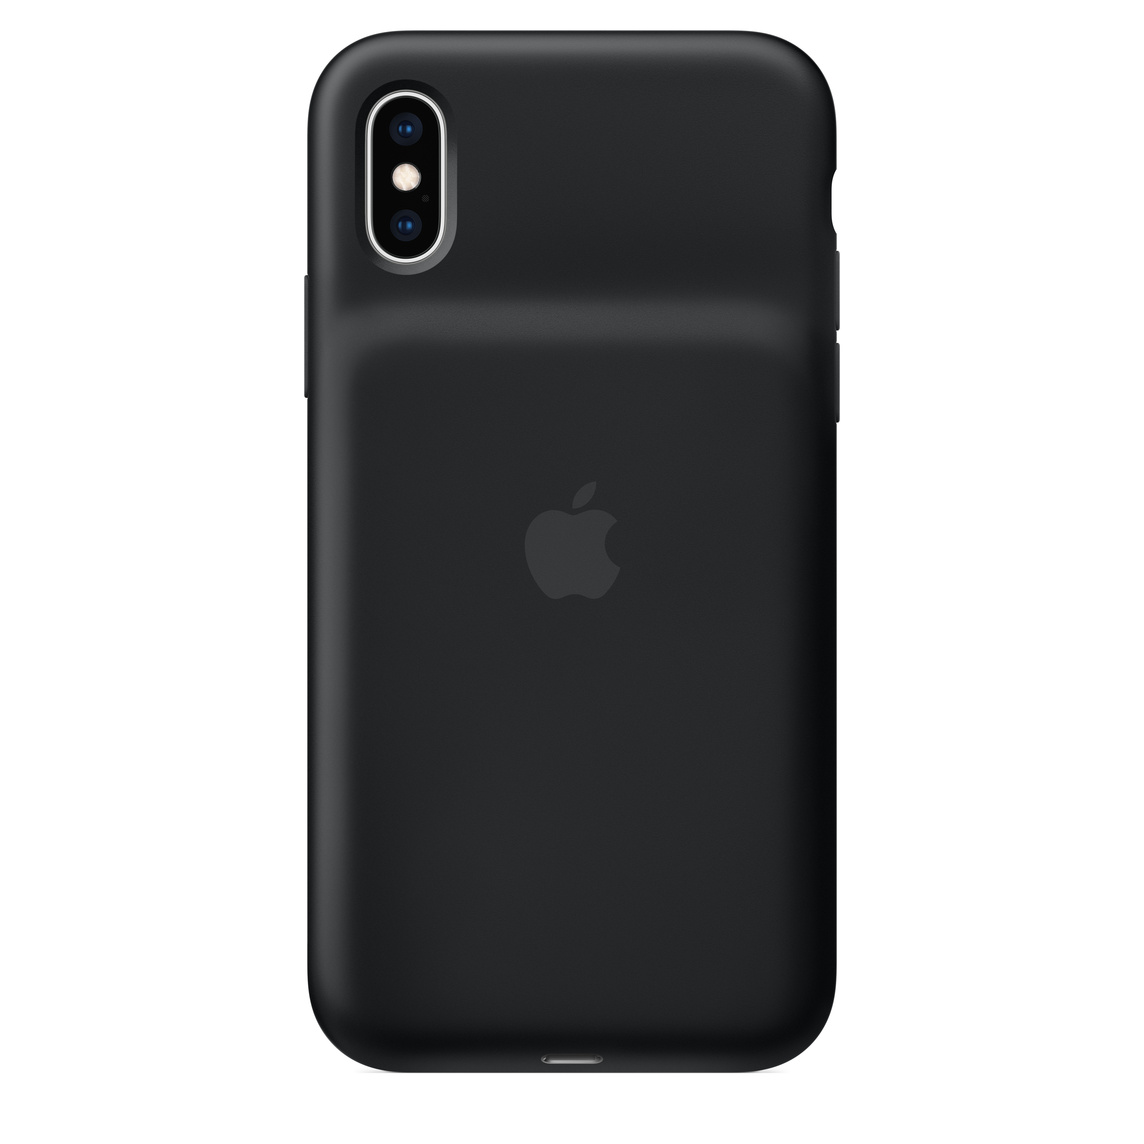 pretty nice 9921e a5eb1 iPhone XS Smart Battery Case - Black